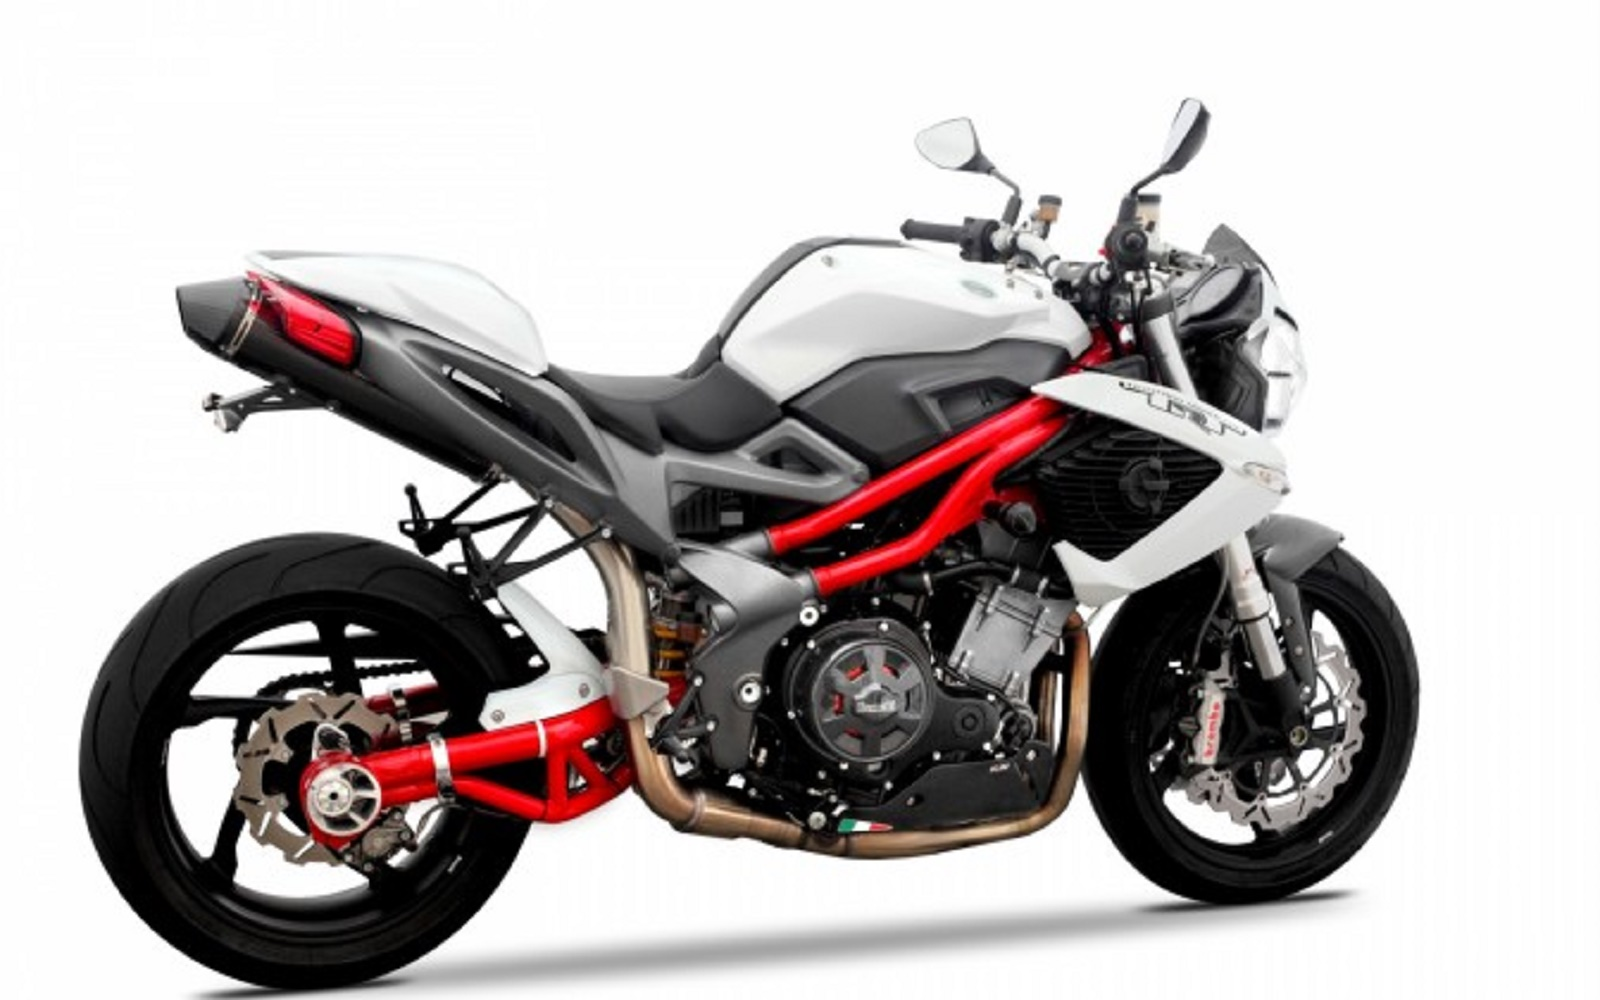 Benelli tnt 1130 r 2016 motorcycle price feature full benelli tnt 1130 r 2016 altavistaventures Image collections